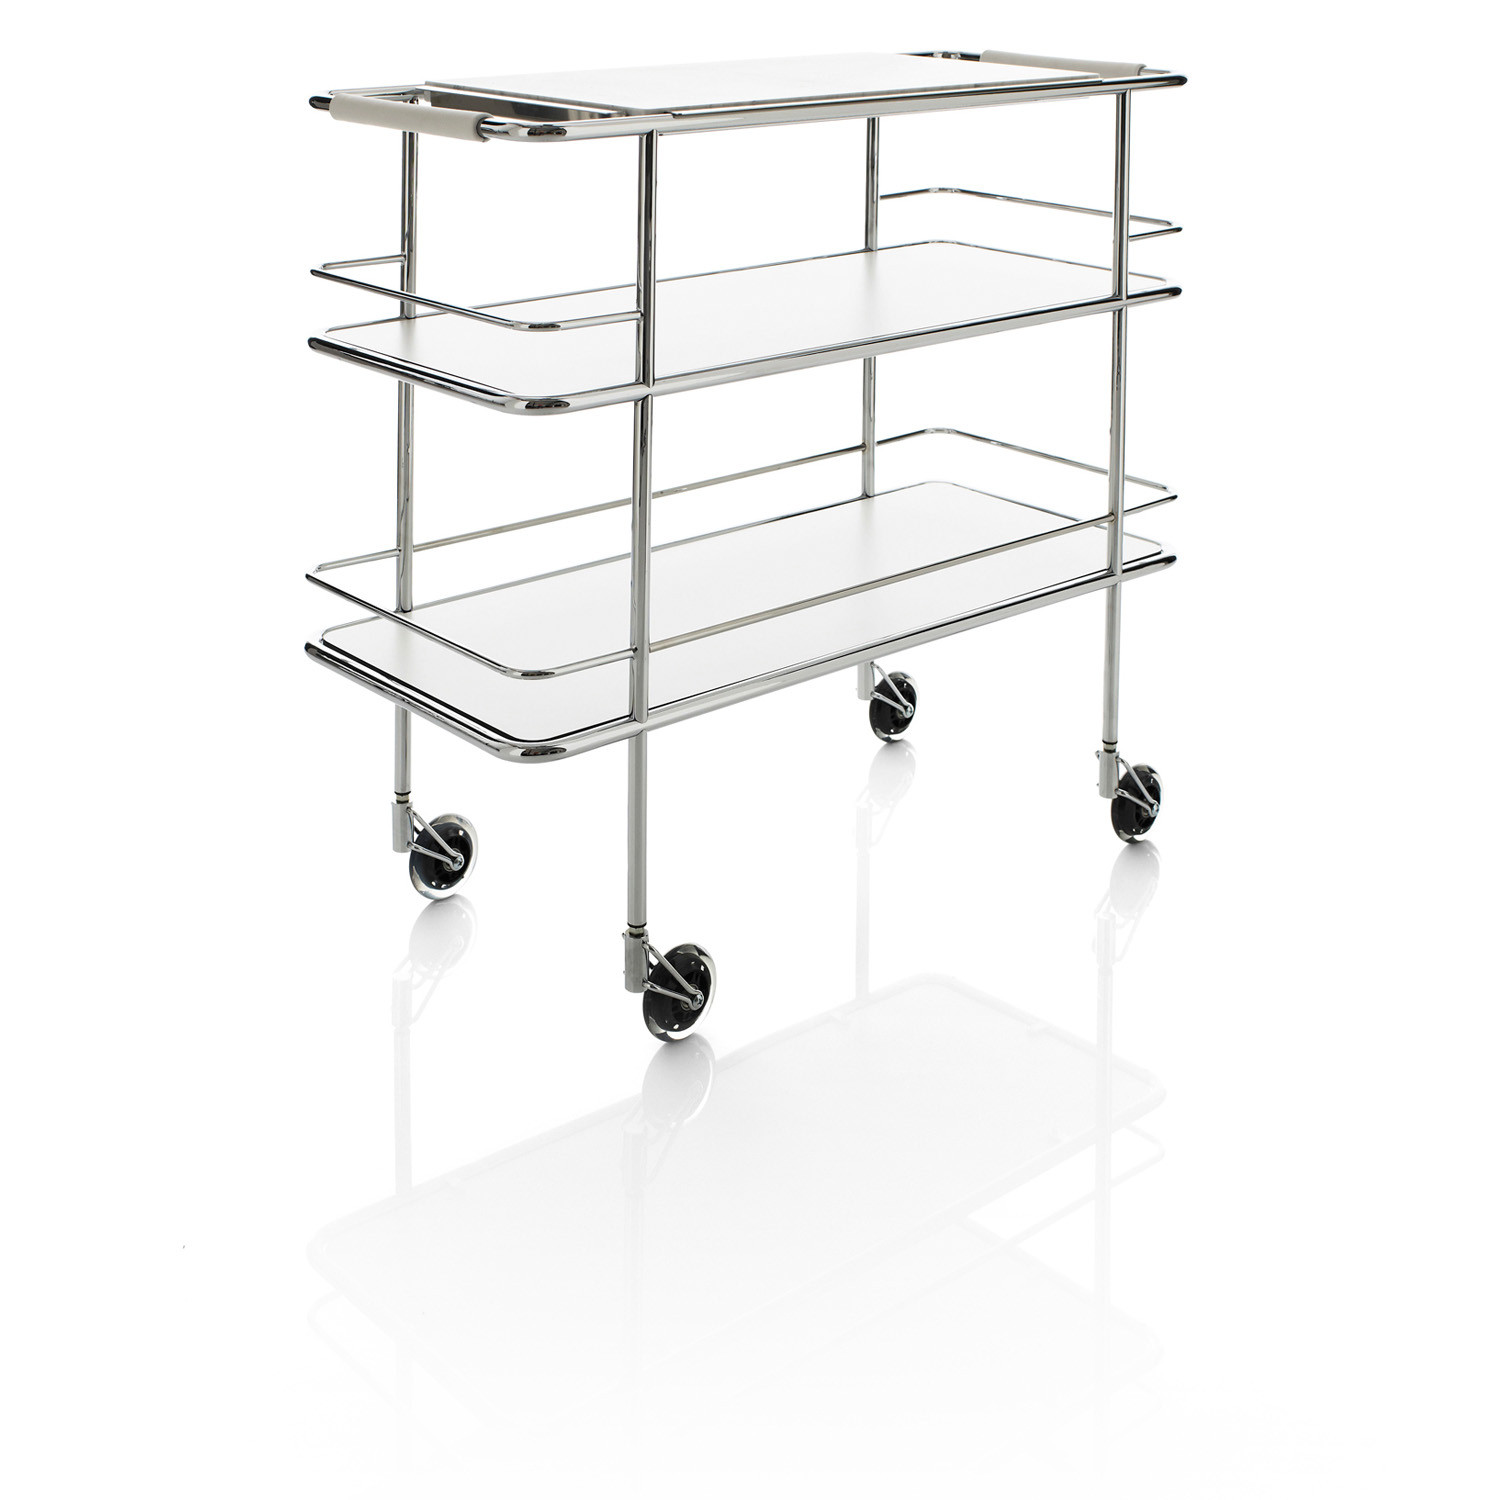 Cargo Trolley Collection Lammhults Office Accessories Apres Furniture